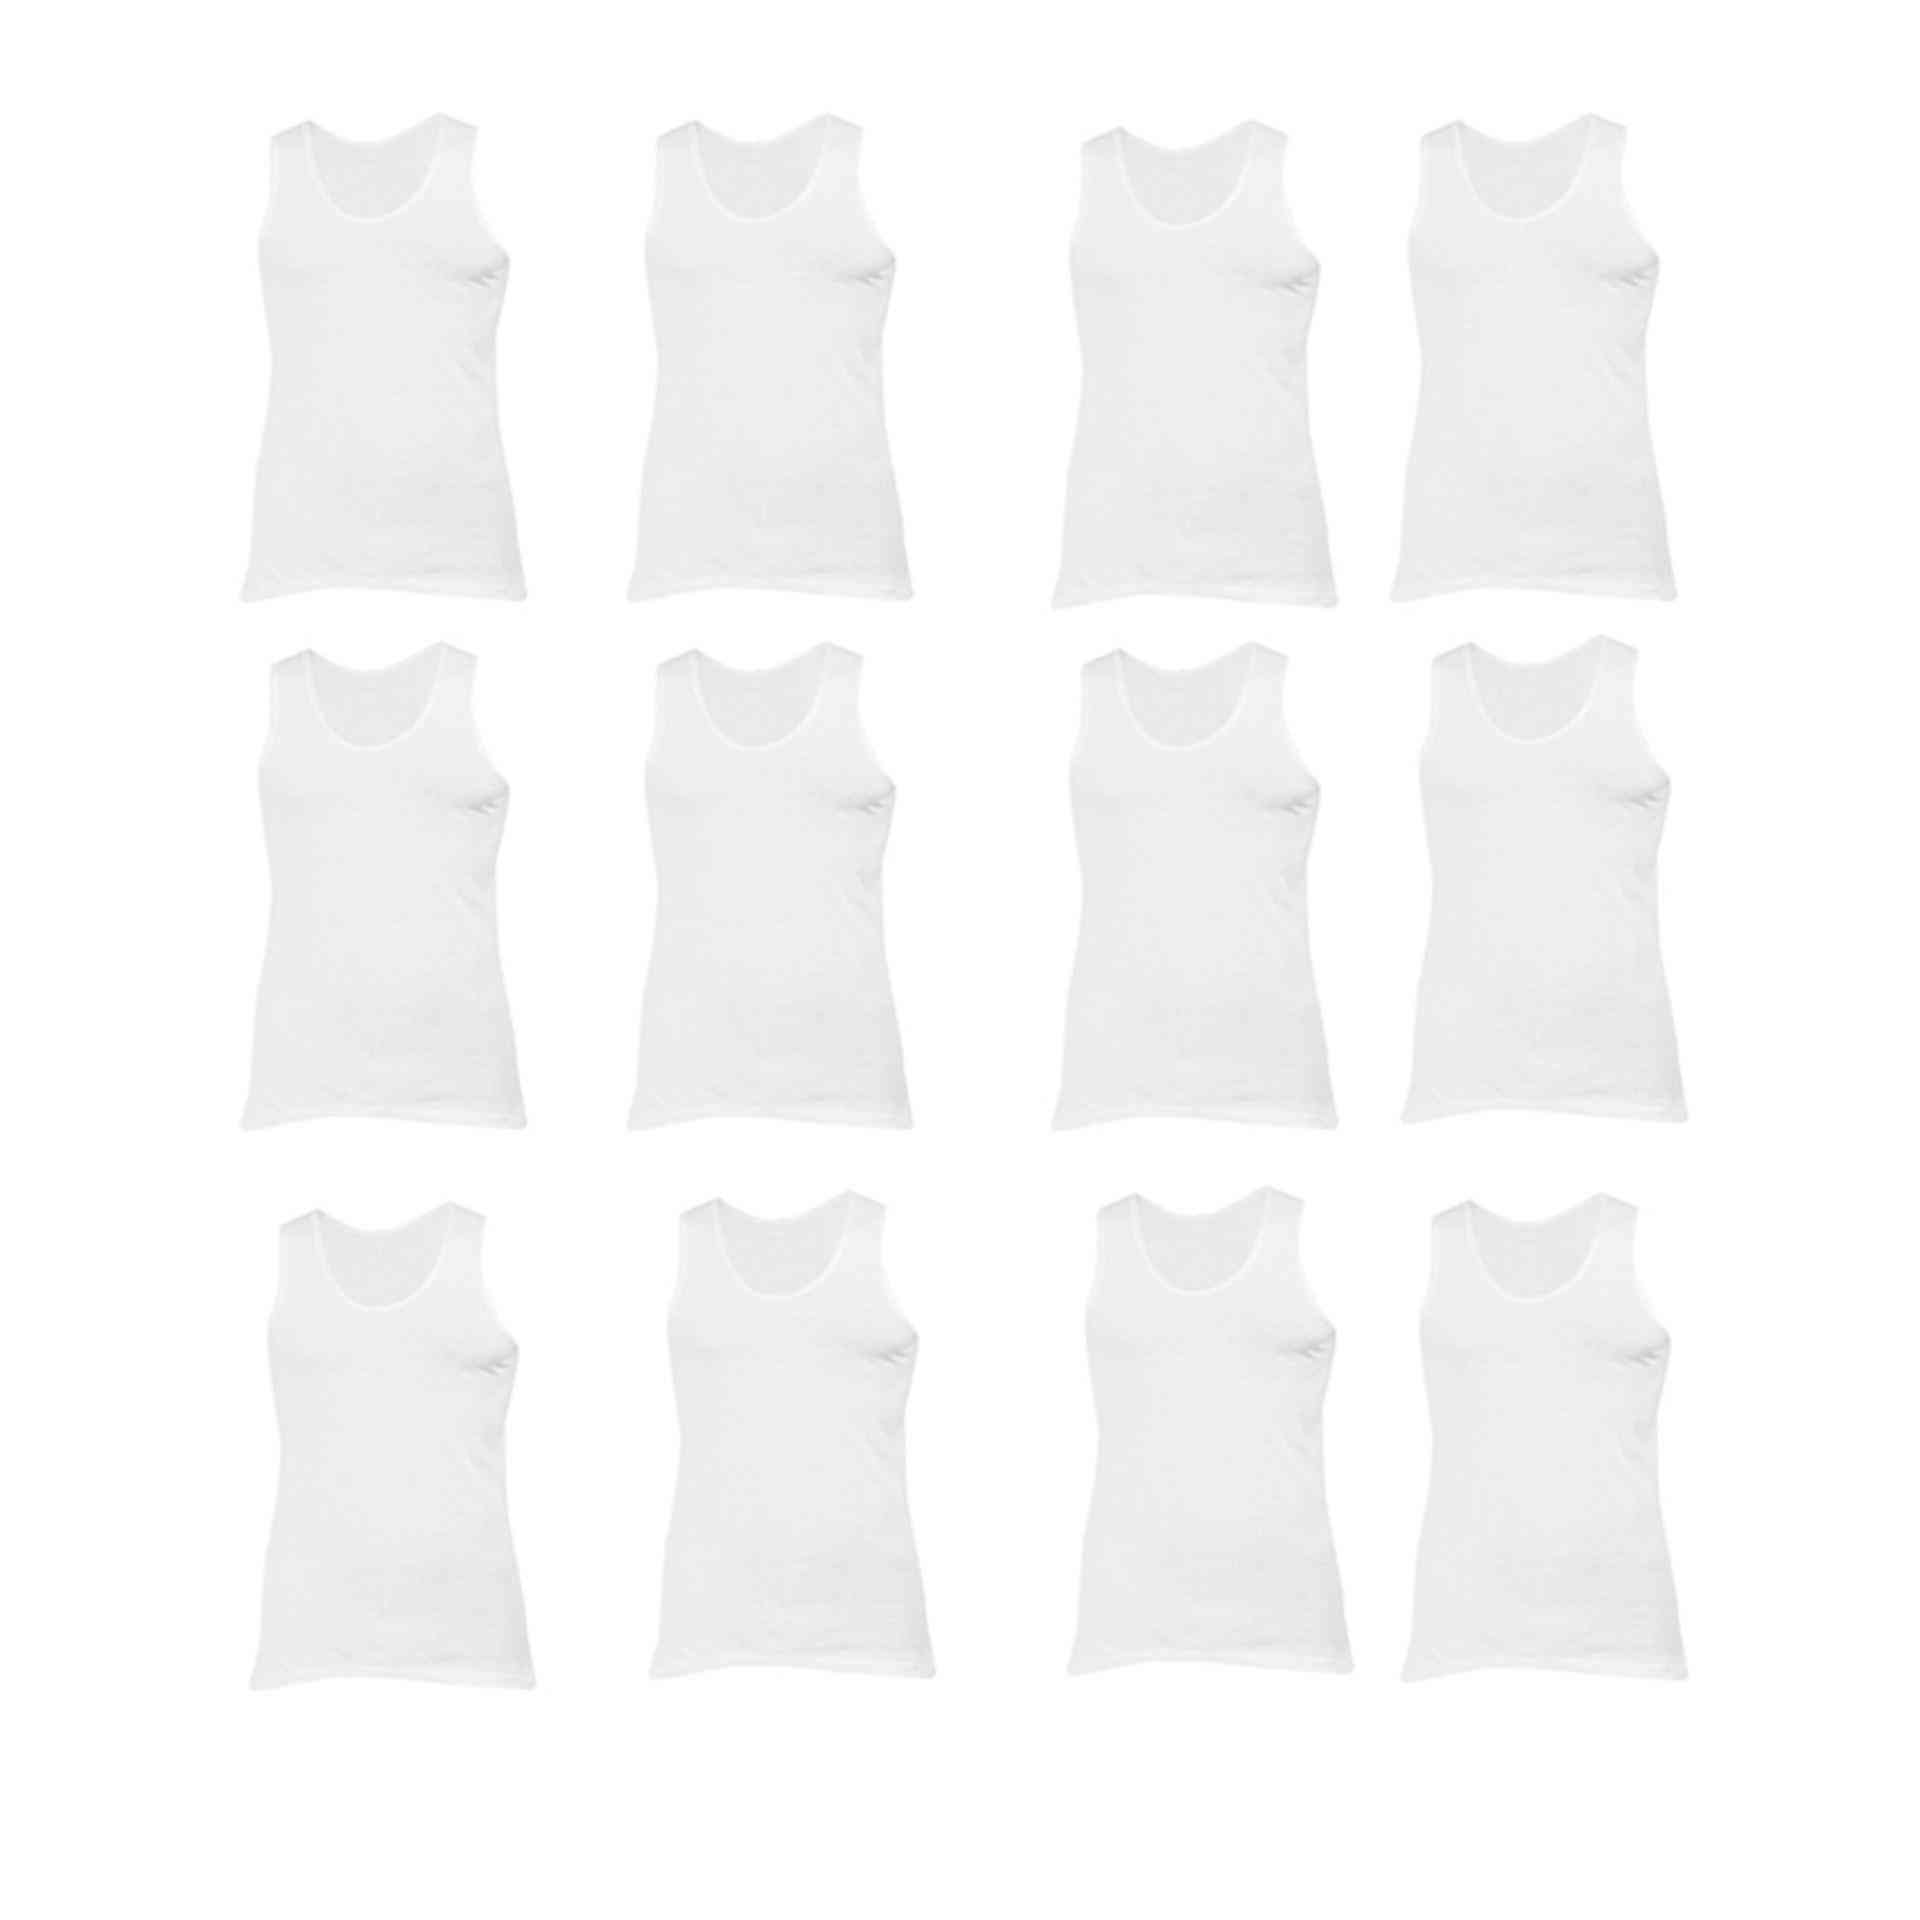 Daisy Summer Pack of 12 Cotton Polyester Vest for Men (80% Cotton 20% Polyester) - White